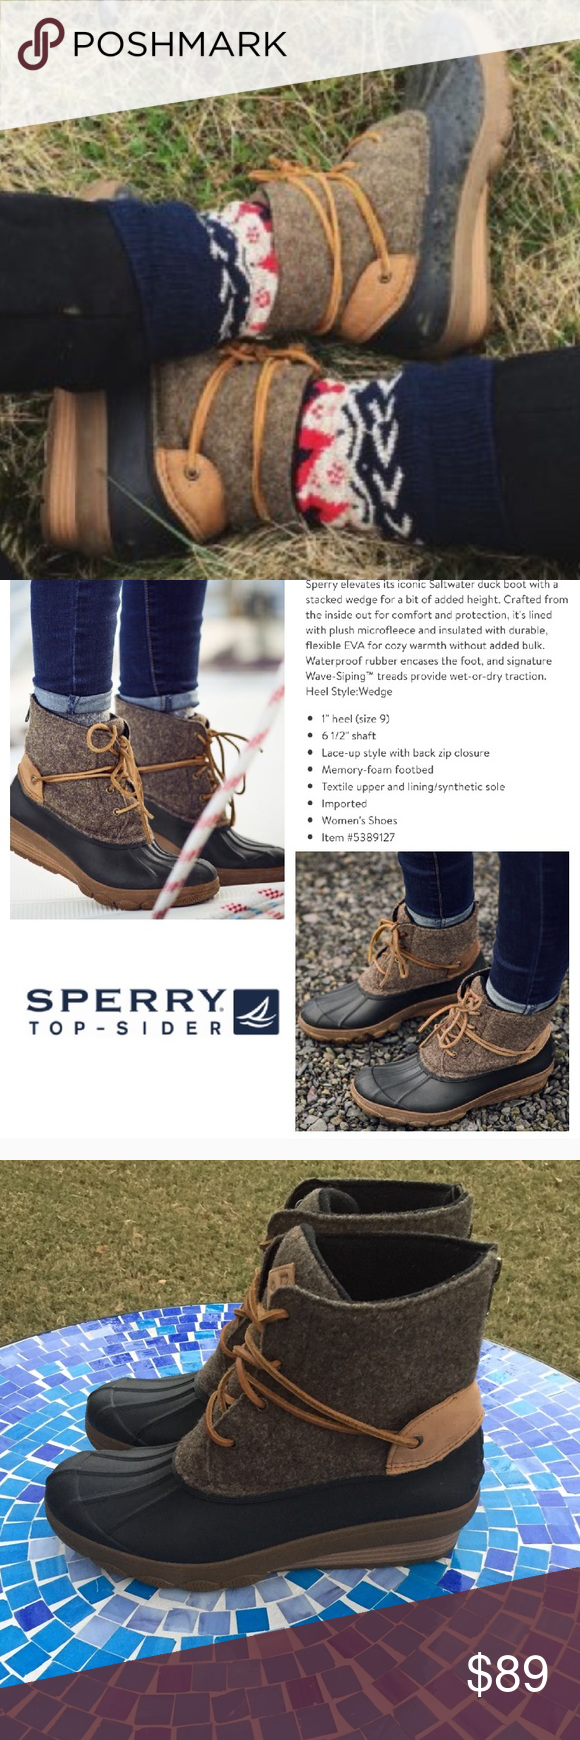 e81e93a8681e LIKE NEW Sperry TopSider Saltwater Wedge Tide boot This Sperry Saltwater  Wedge Tide waterproof wool duck